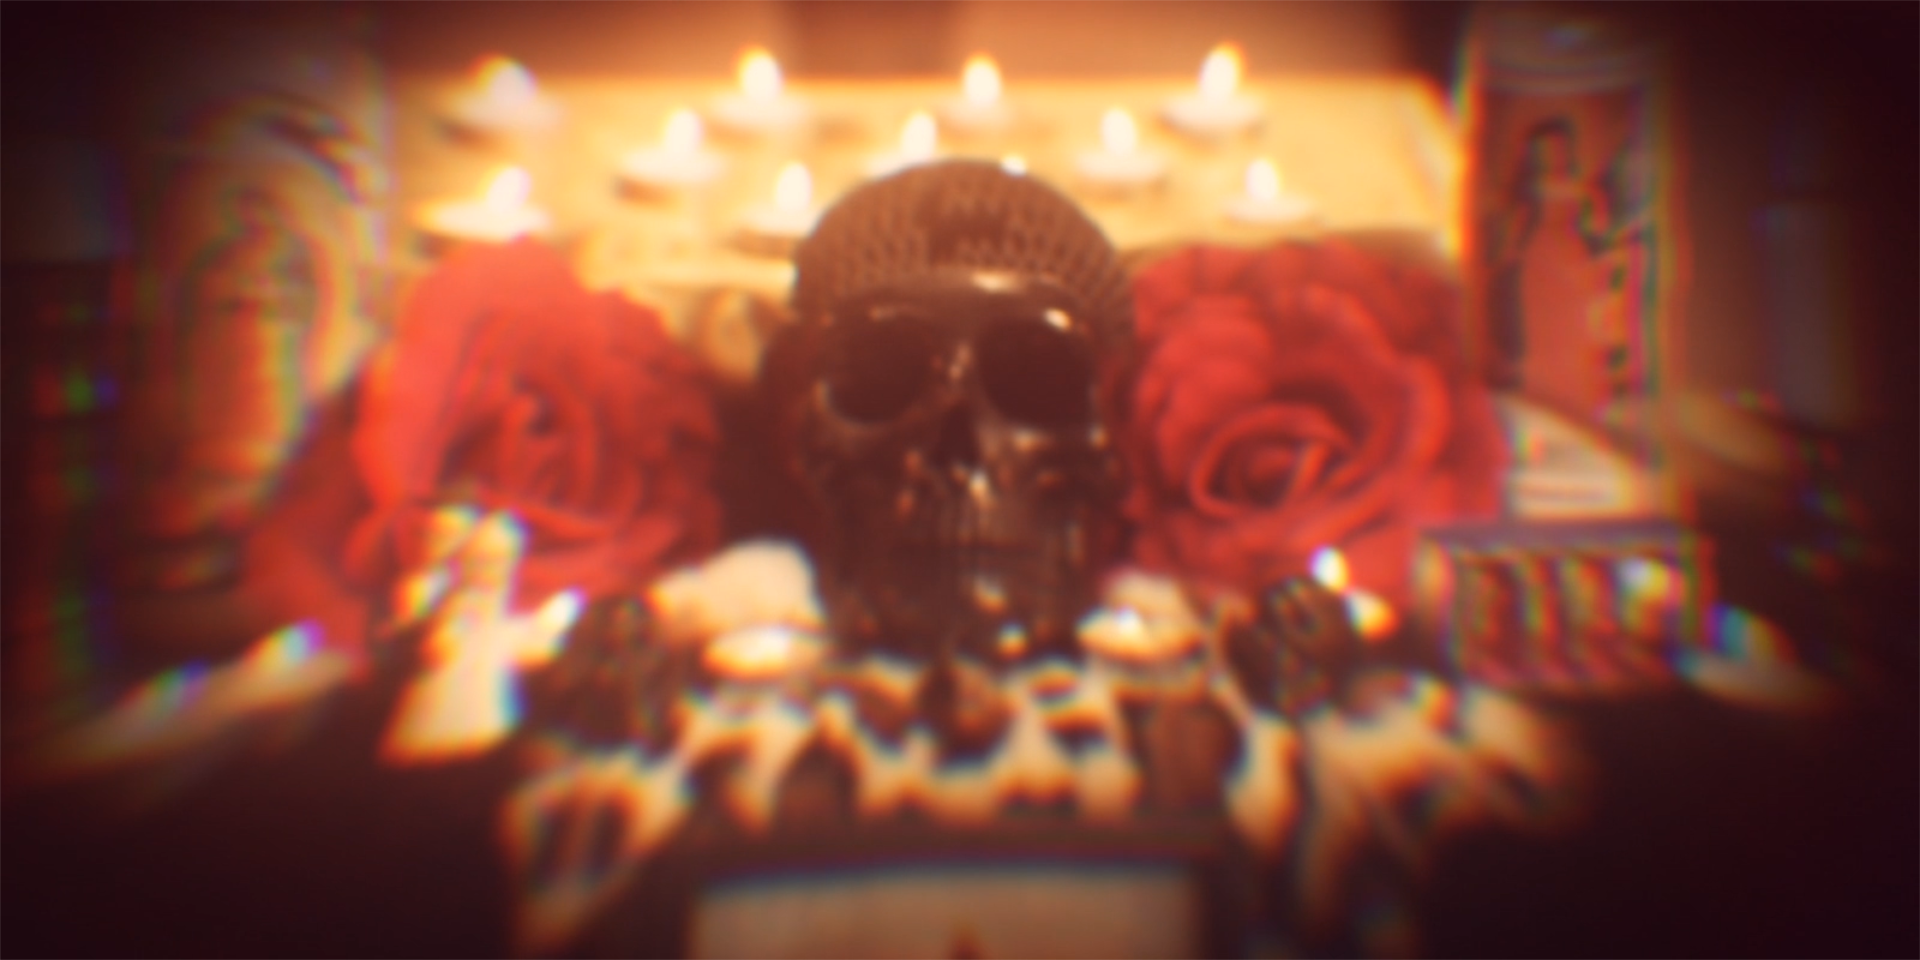 19_02964.png